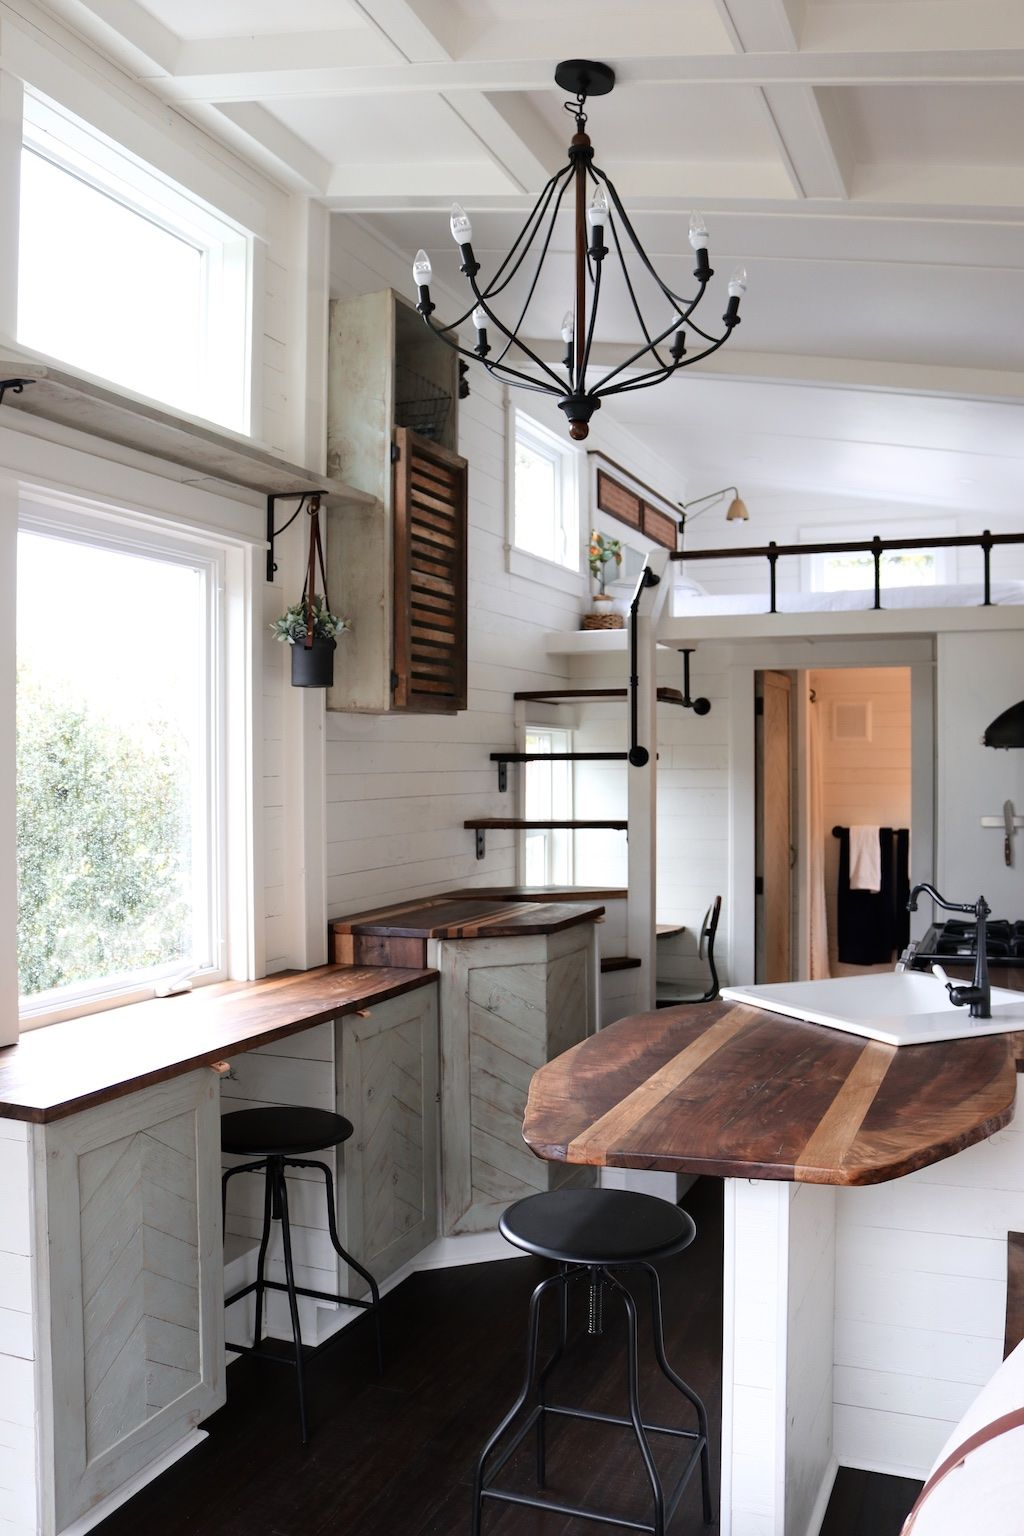 Modernes Kleines Haus · I Love Almost Everything About This Tiny House